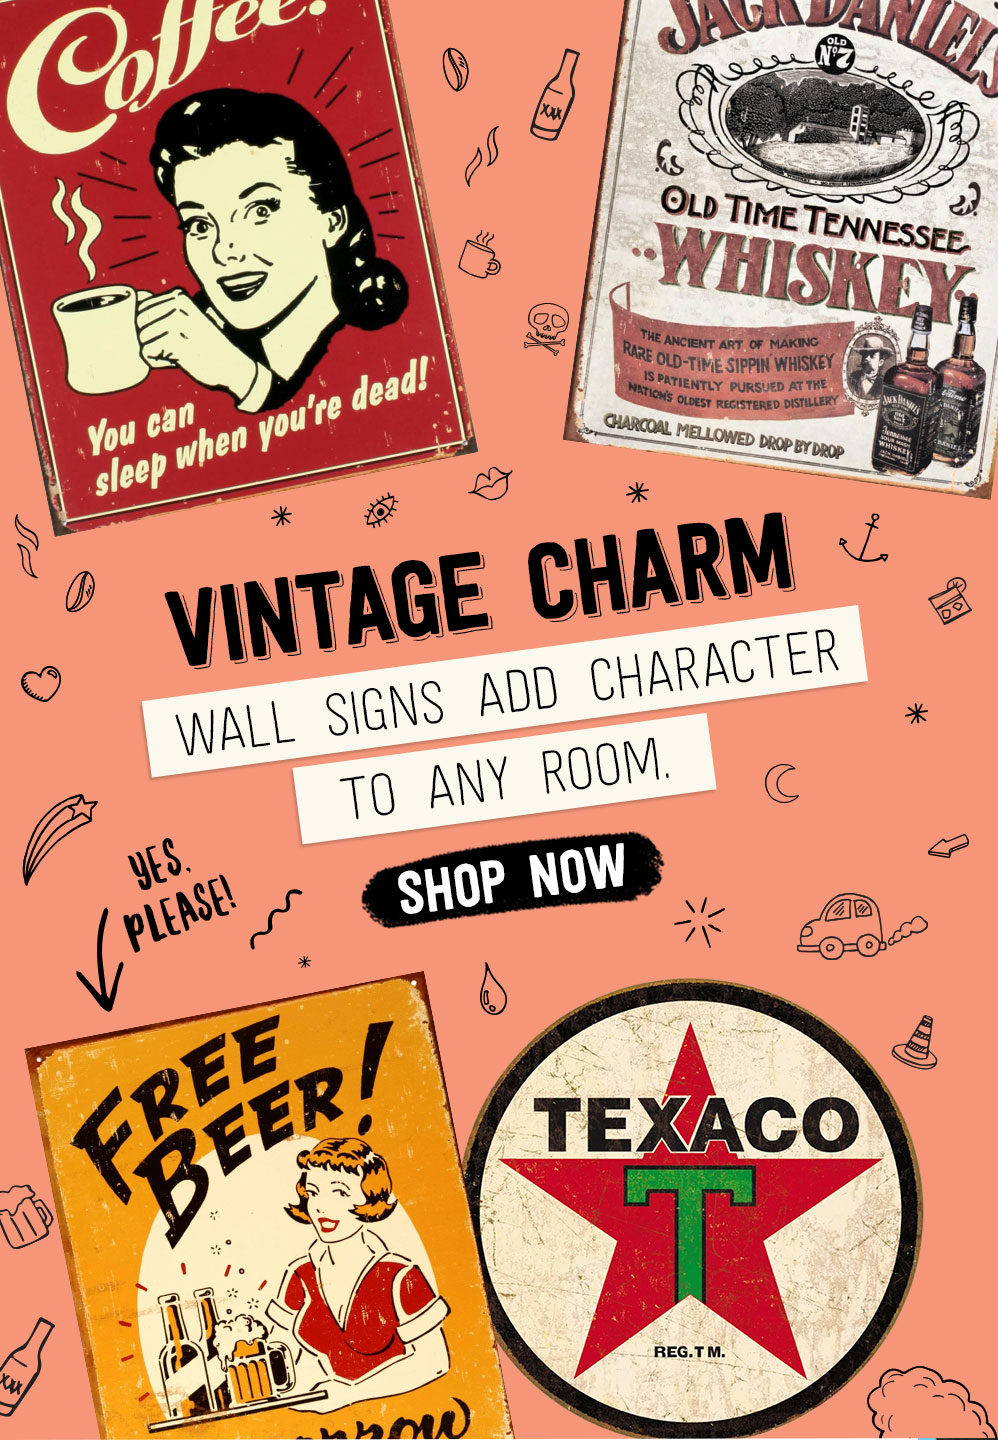 VINTAGE CHARM. Wall signs add character to any room. Shop Now